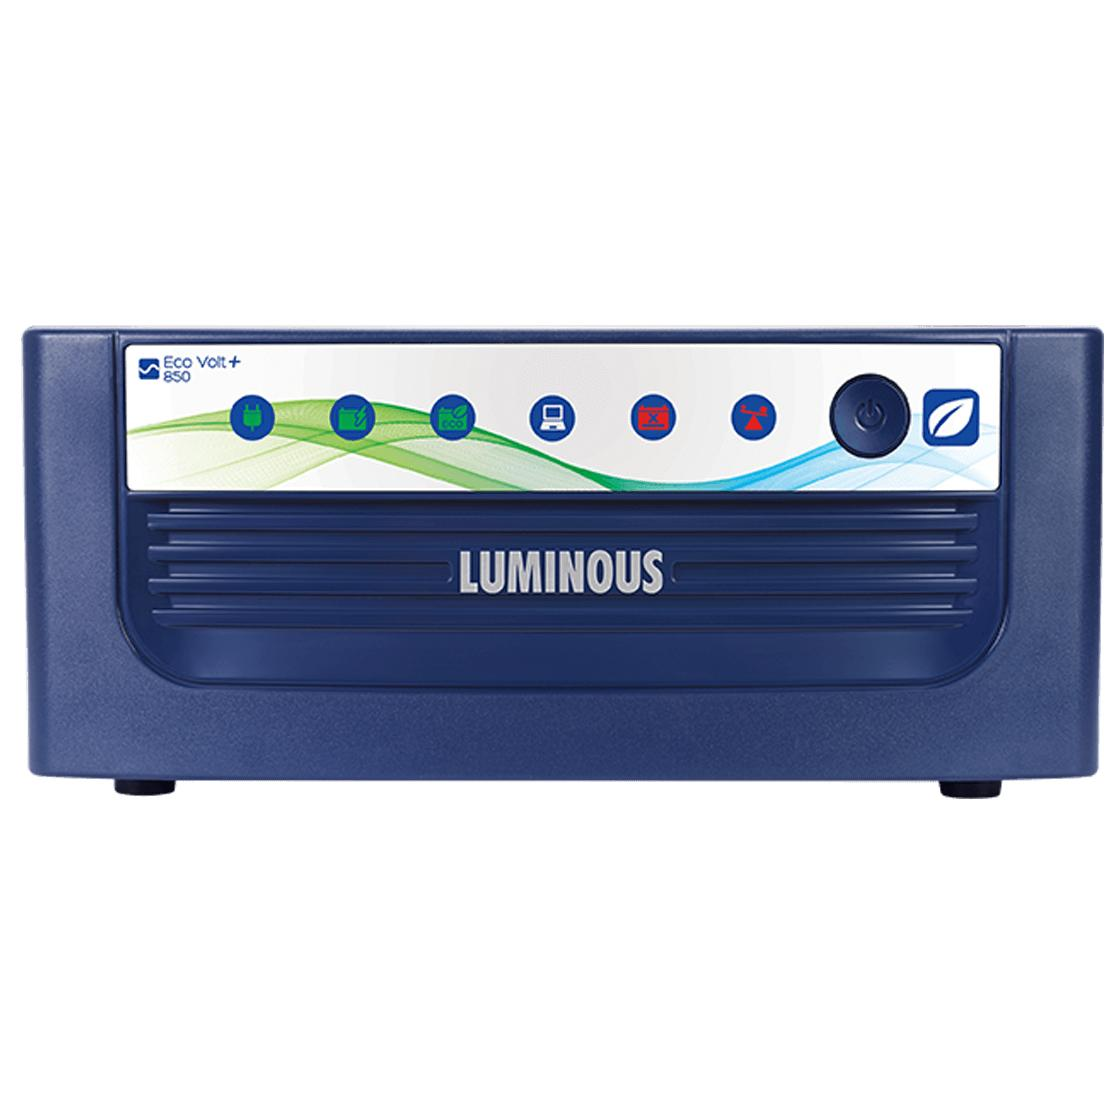 Luminous Eco Volt+ 850VA Home UPS